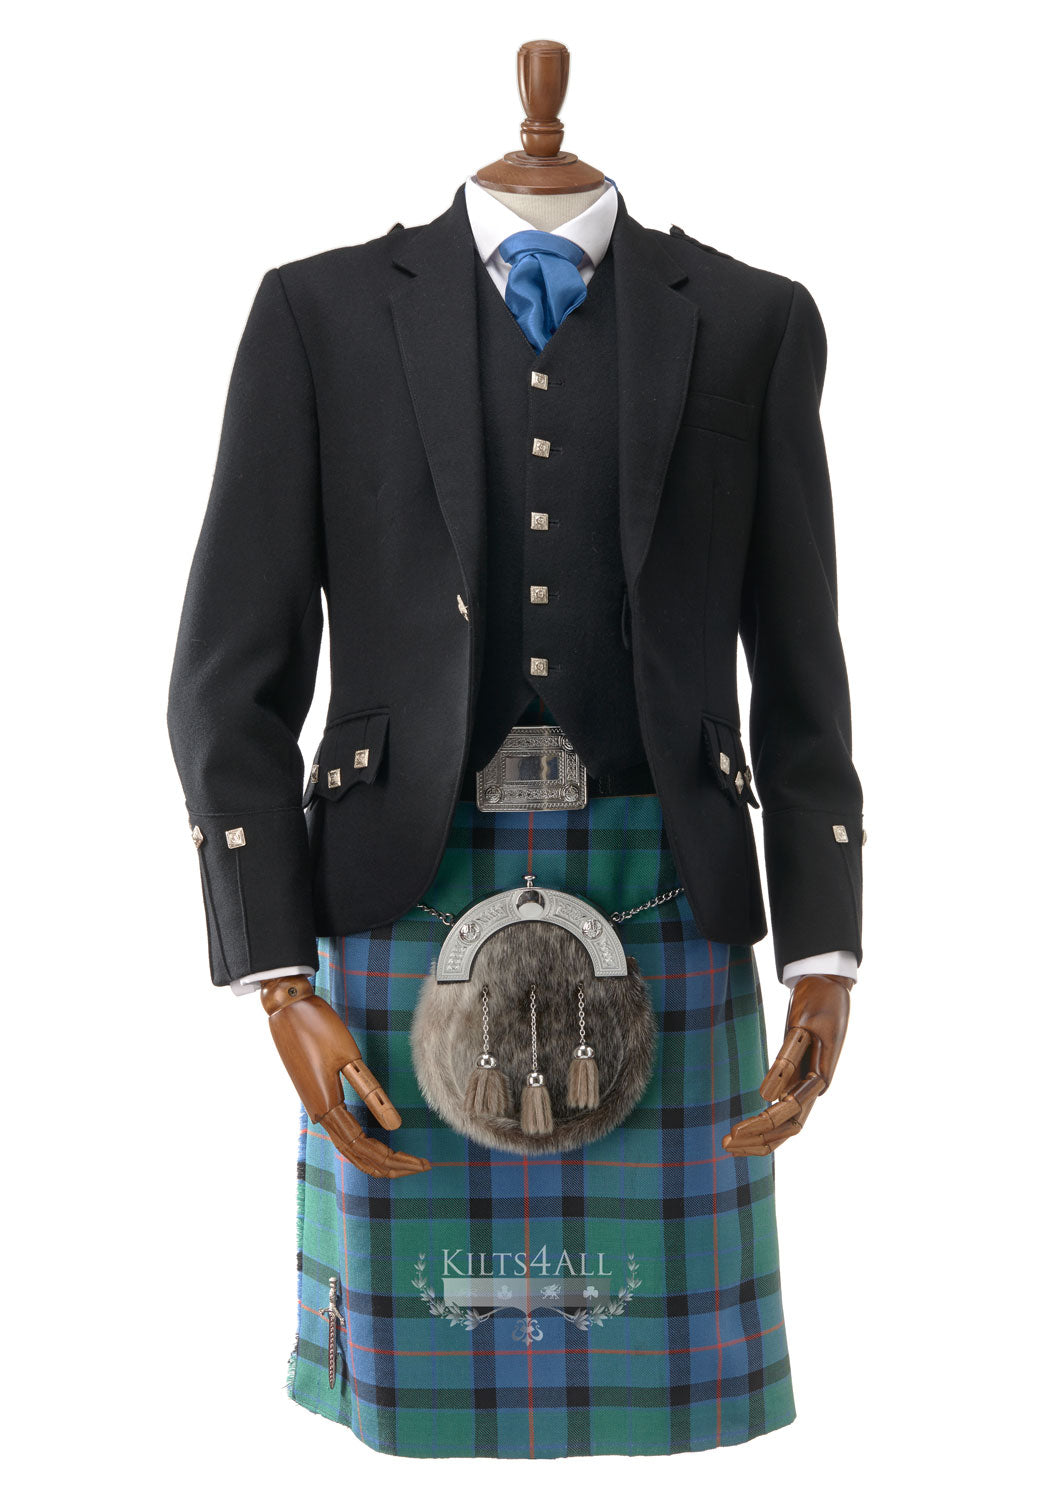 Mens Scottish Tartan Kilt Outfit to Hire - Traditional Black Argyll Jacket & Waistcoat